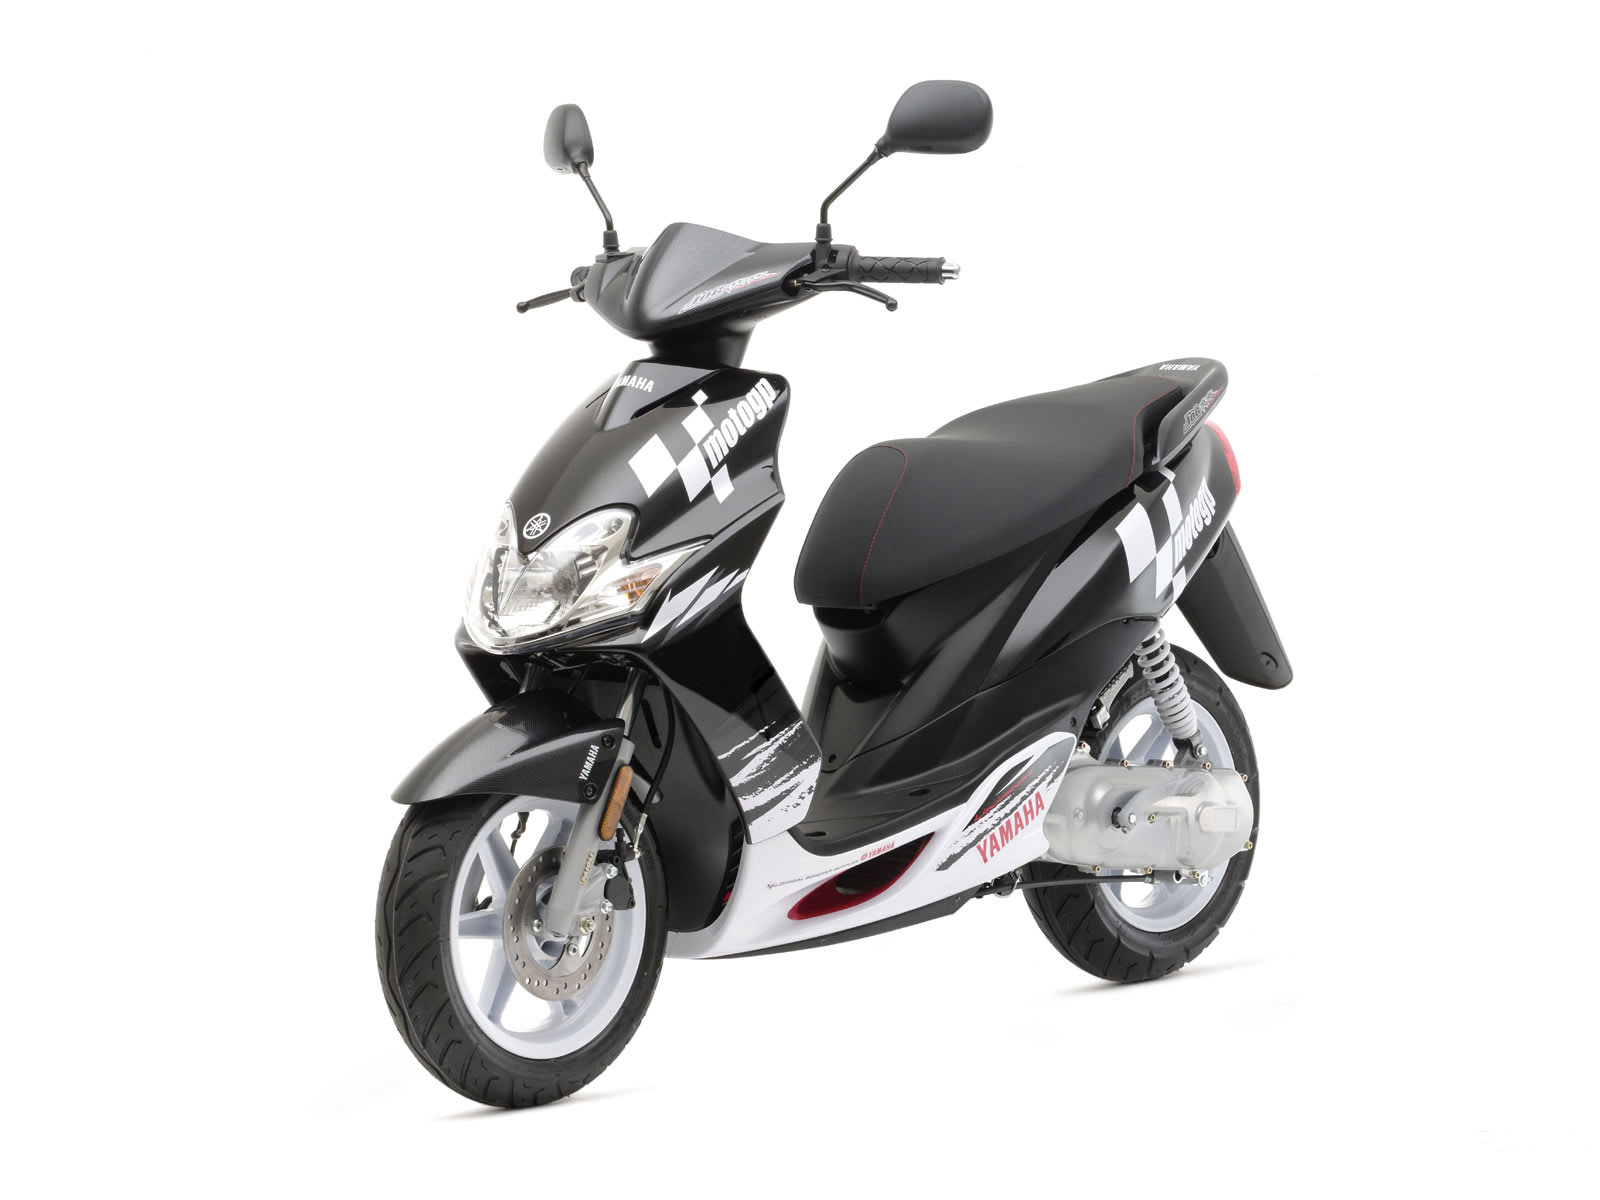 2011 Yamaha Jog RR specifications and pictures